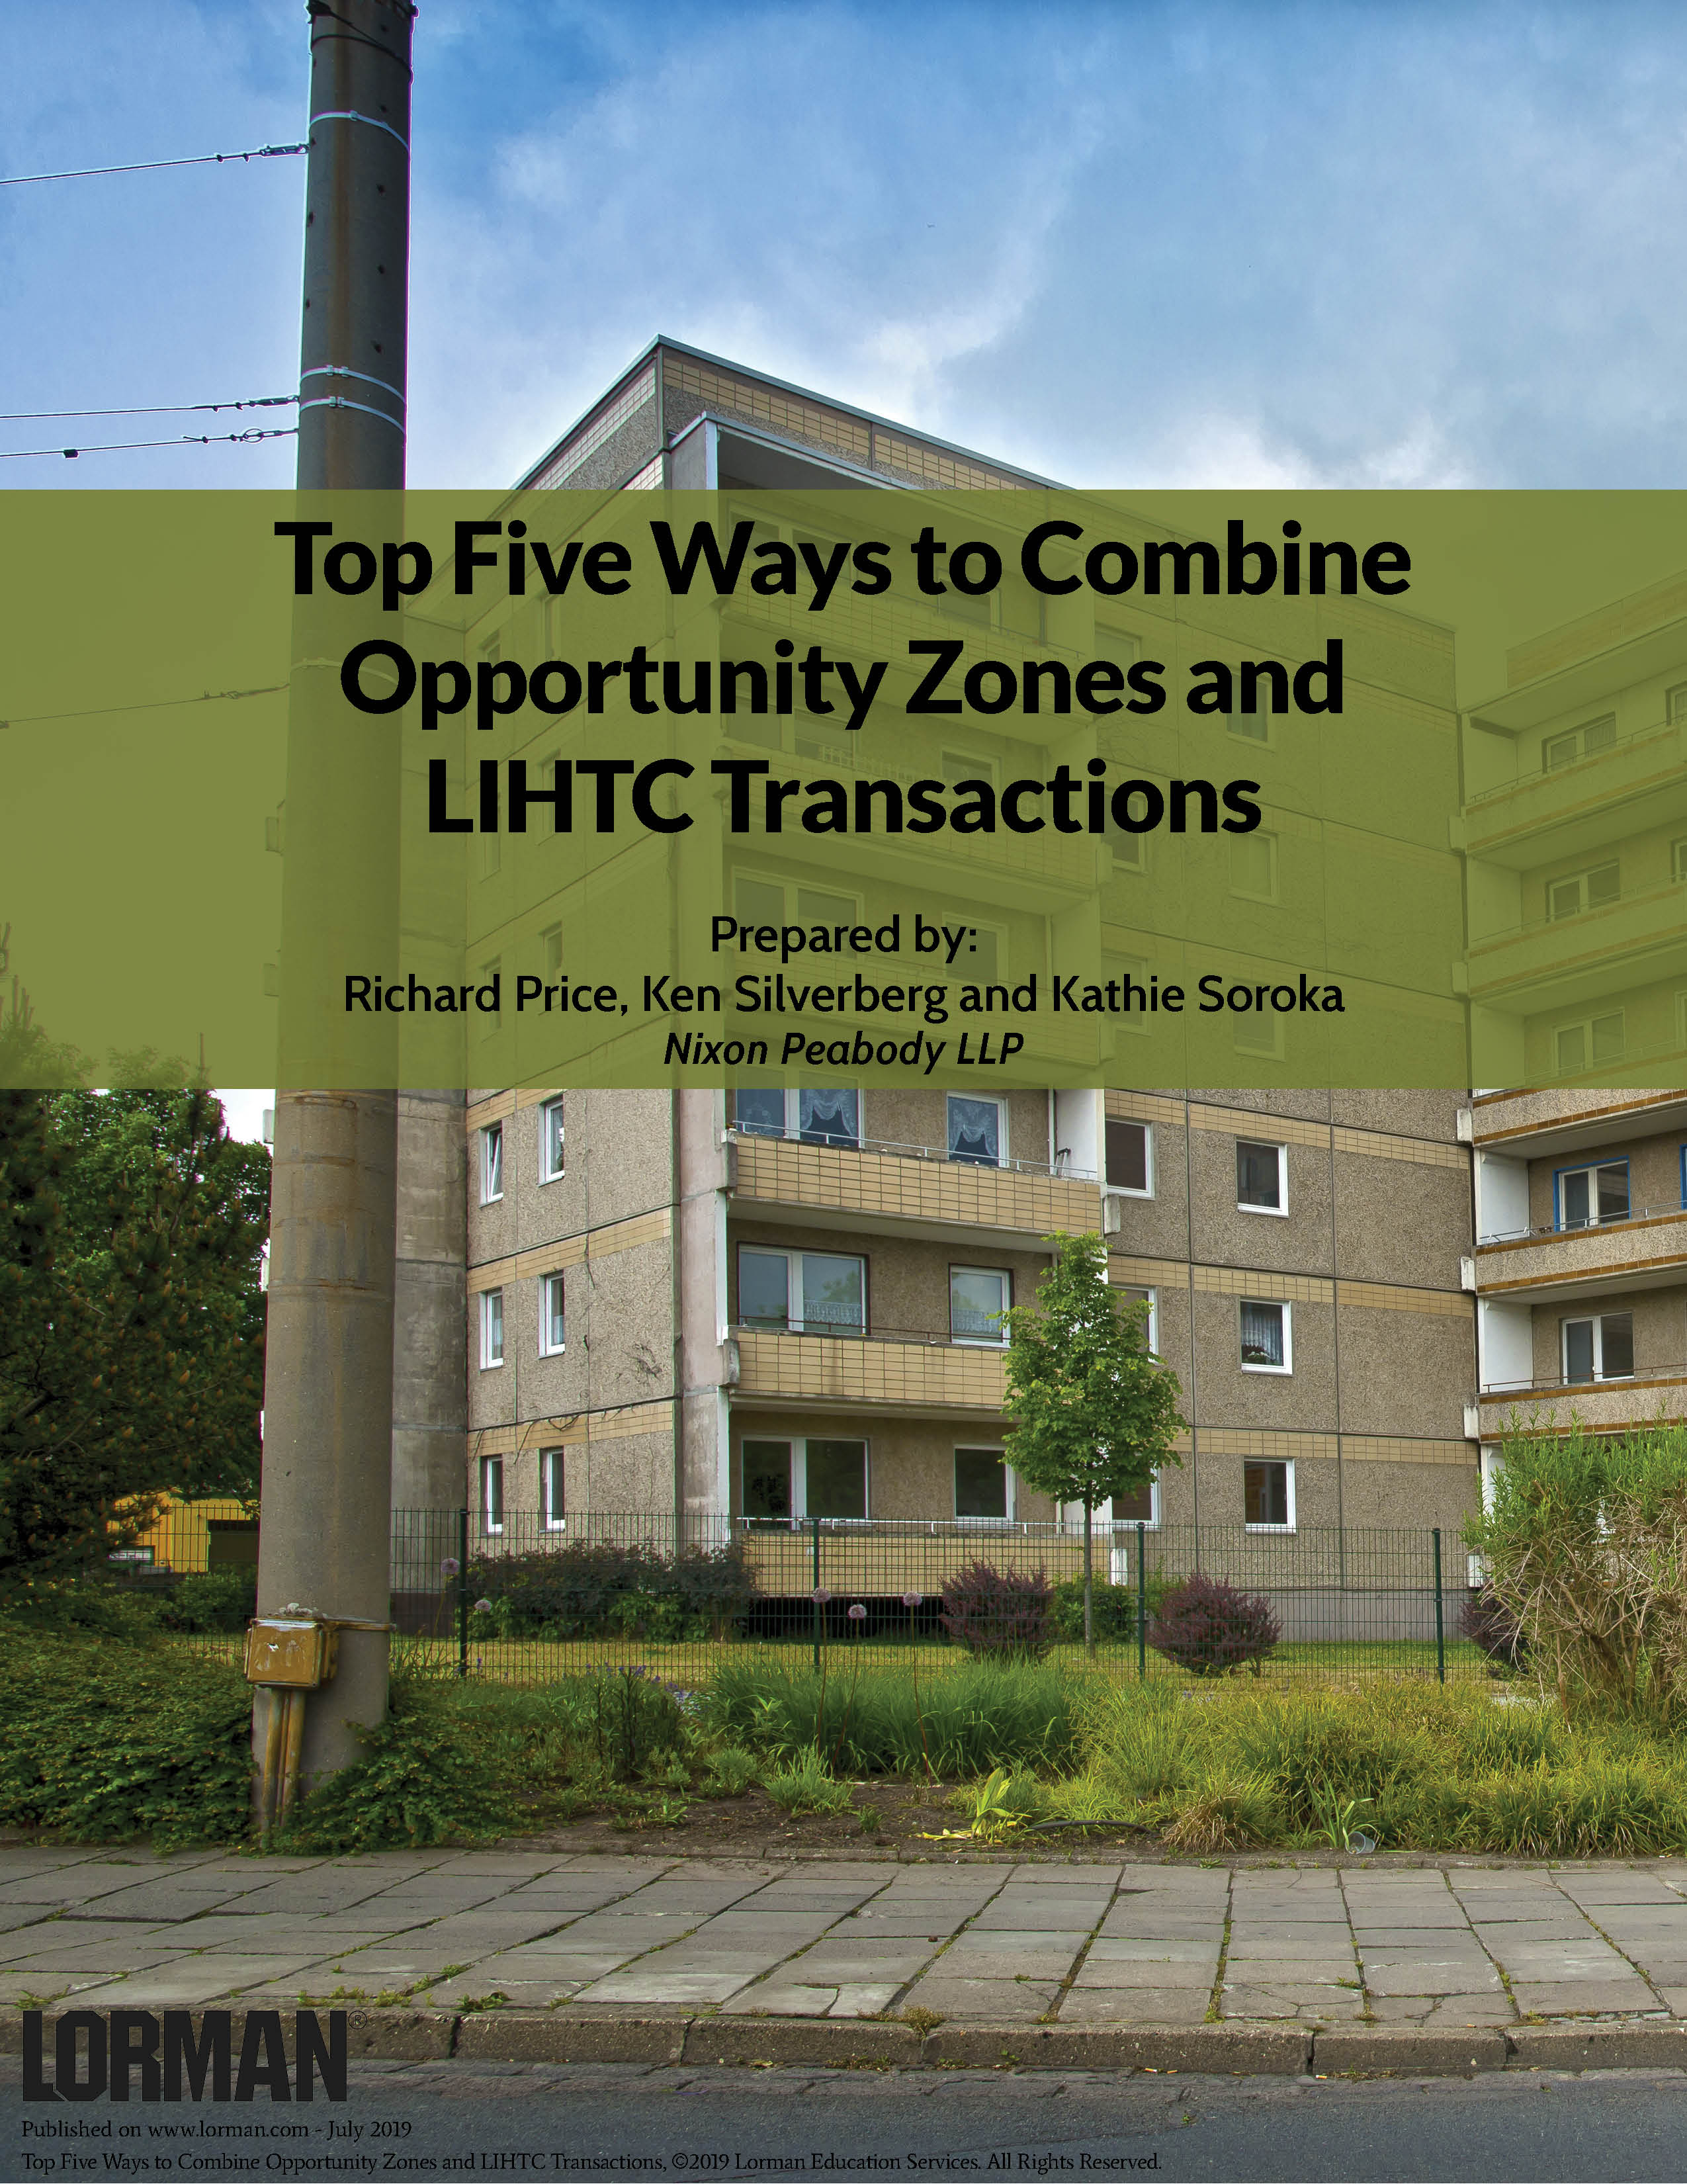 Top Five Ways to Combine Opportunity Zones and LIHTC Transactions